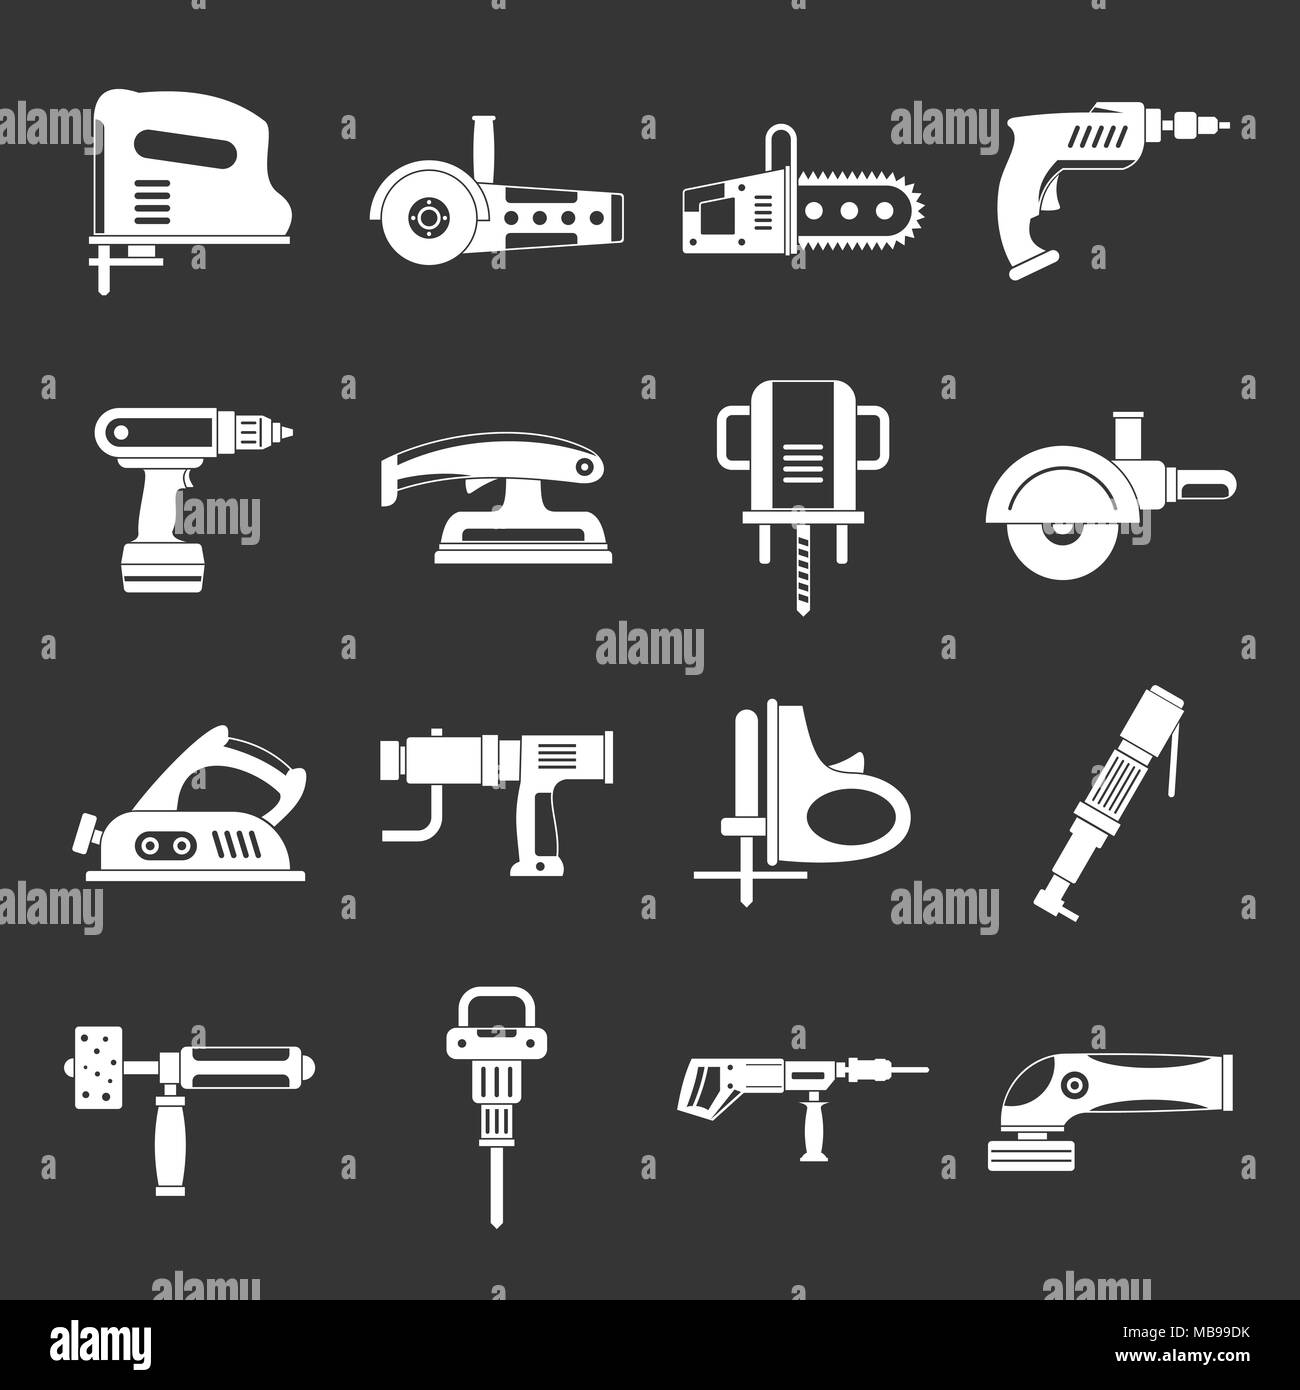 Electric tools icons set grey vector - Stock Image